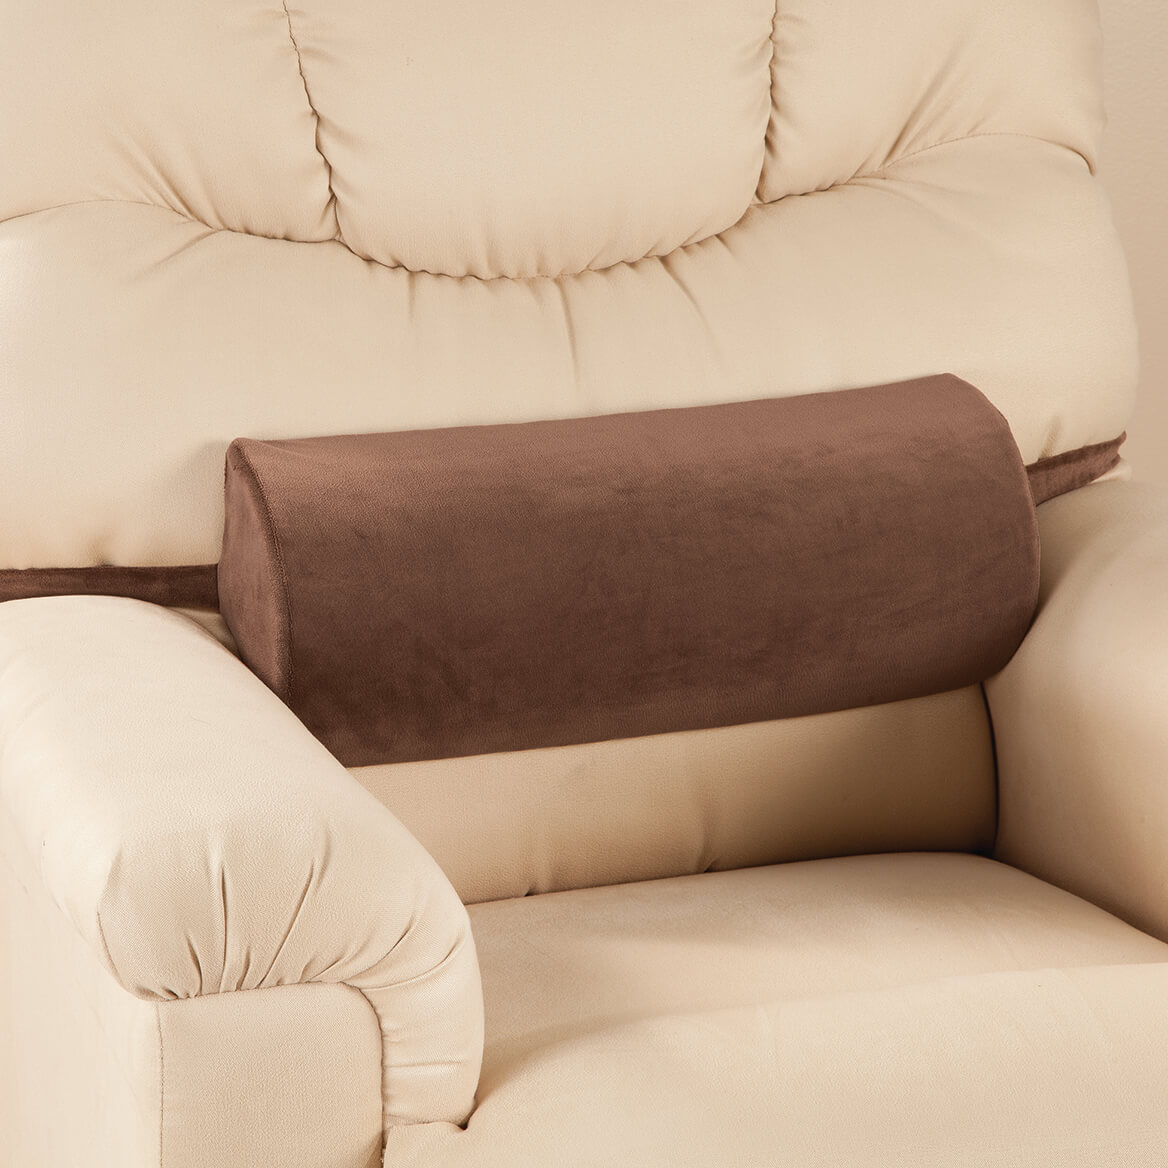 Recliner Pillow Multi Purpose Recliner Cushion